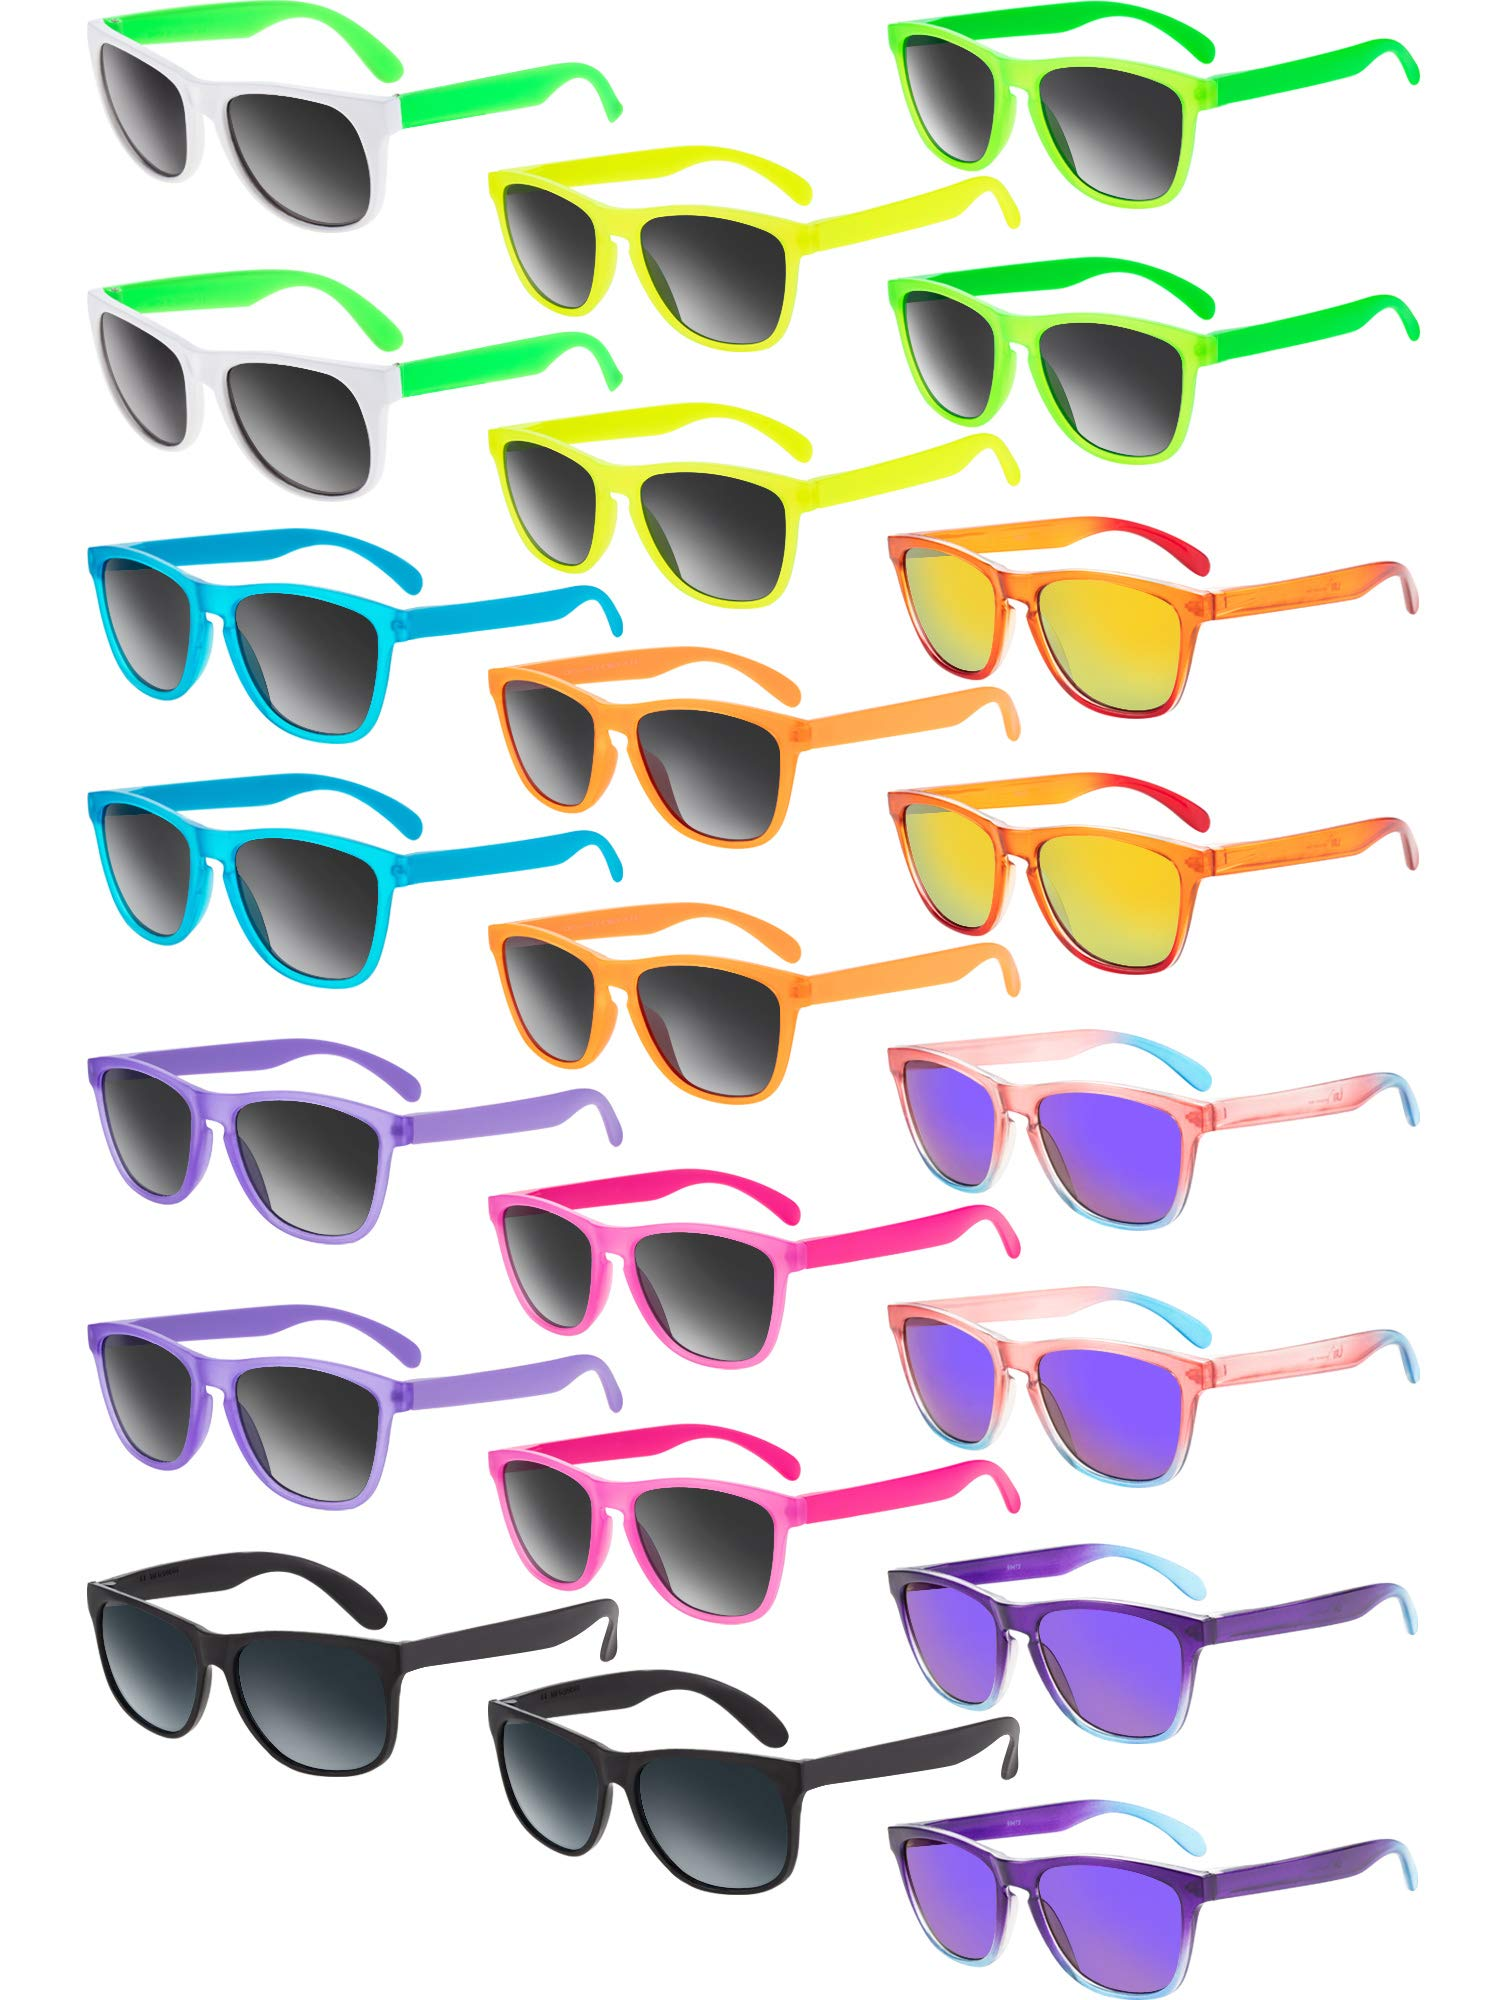 22 Pieces Retro Neon Sunglasses 80s Party Favor Sunglasses Pool Party Sunglasses for Children and Adults Party Gifts